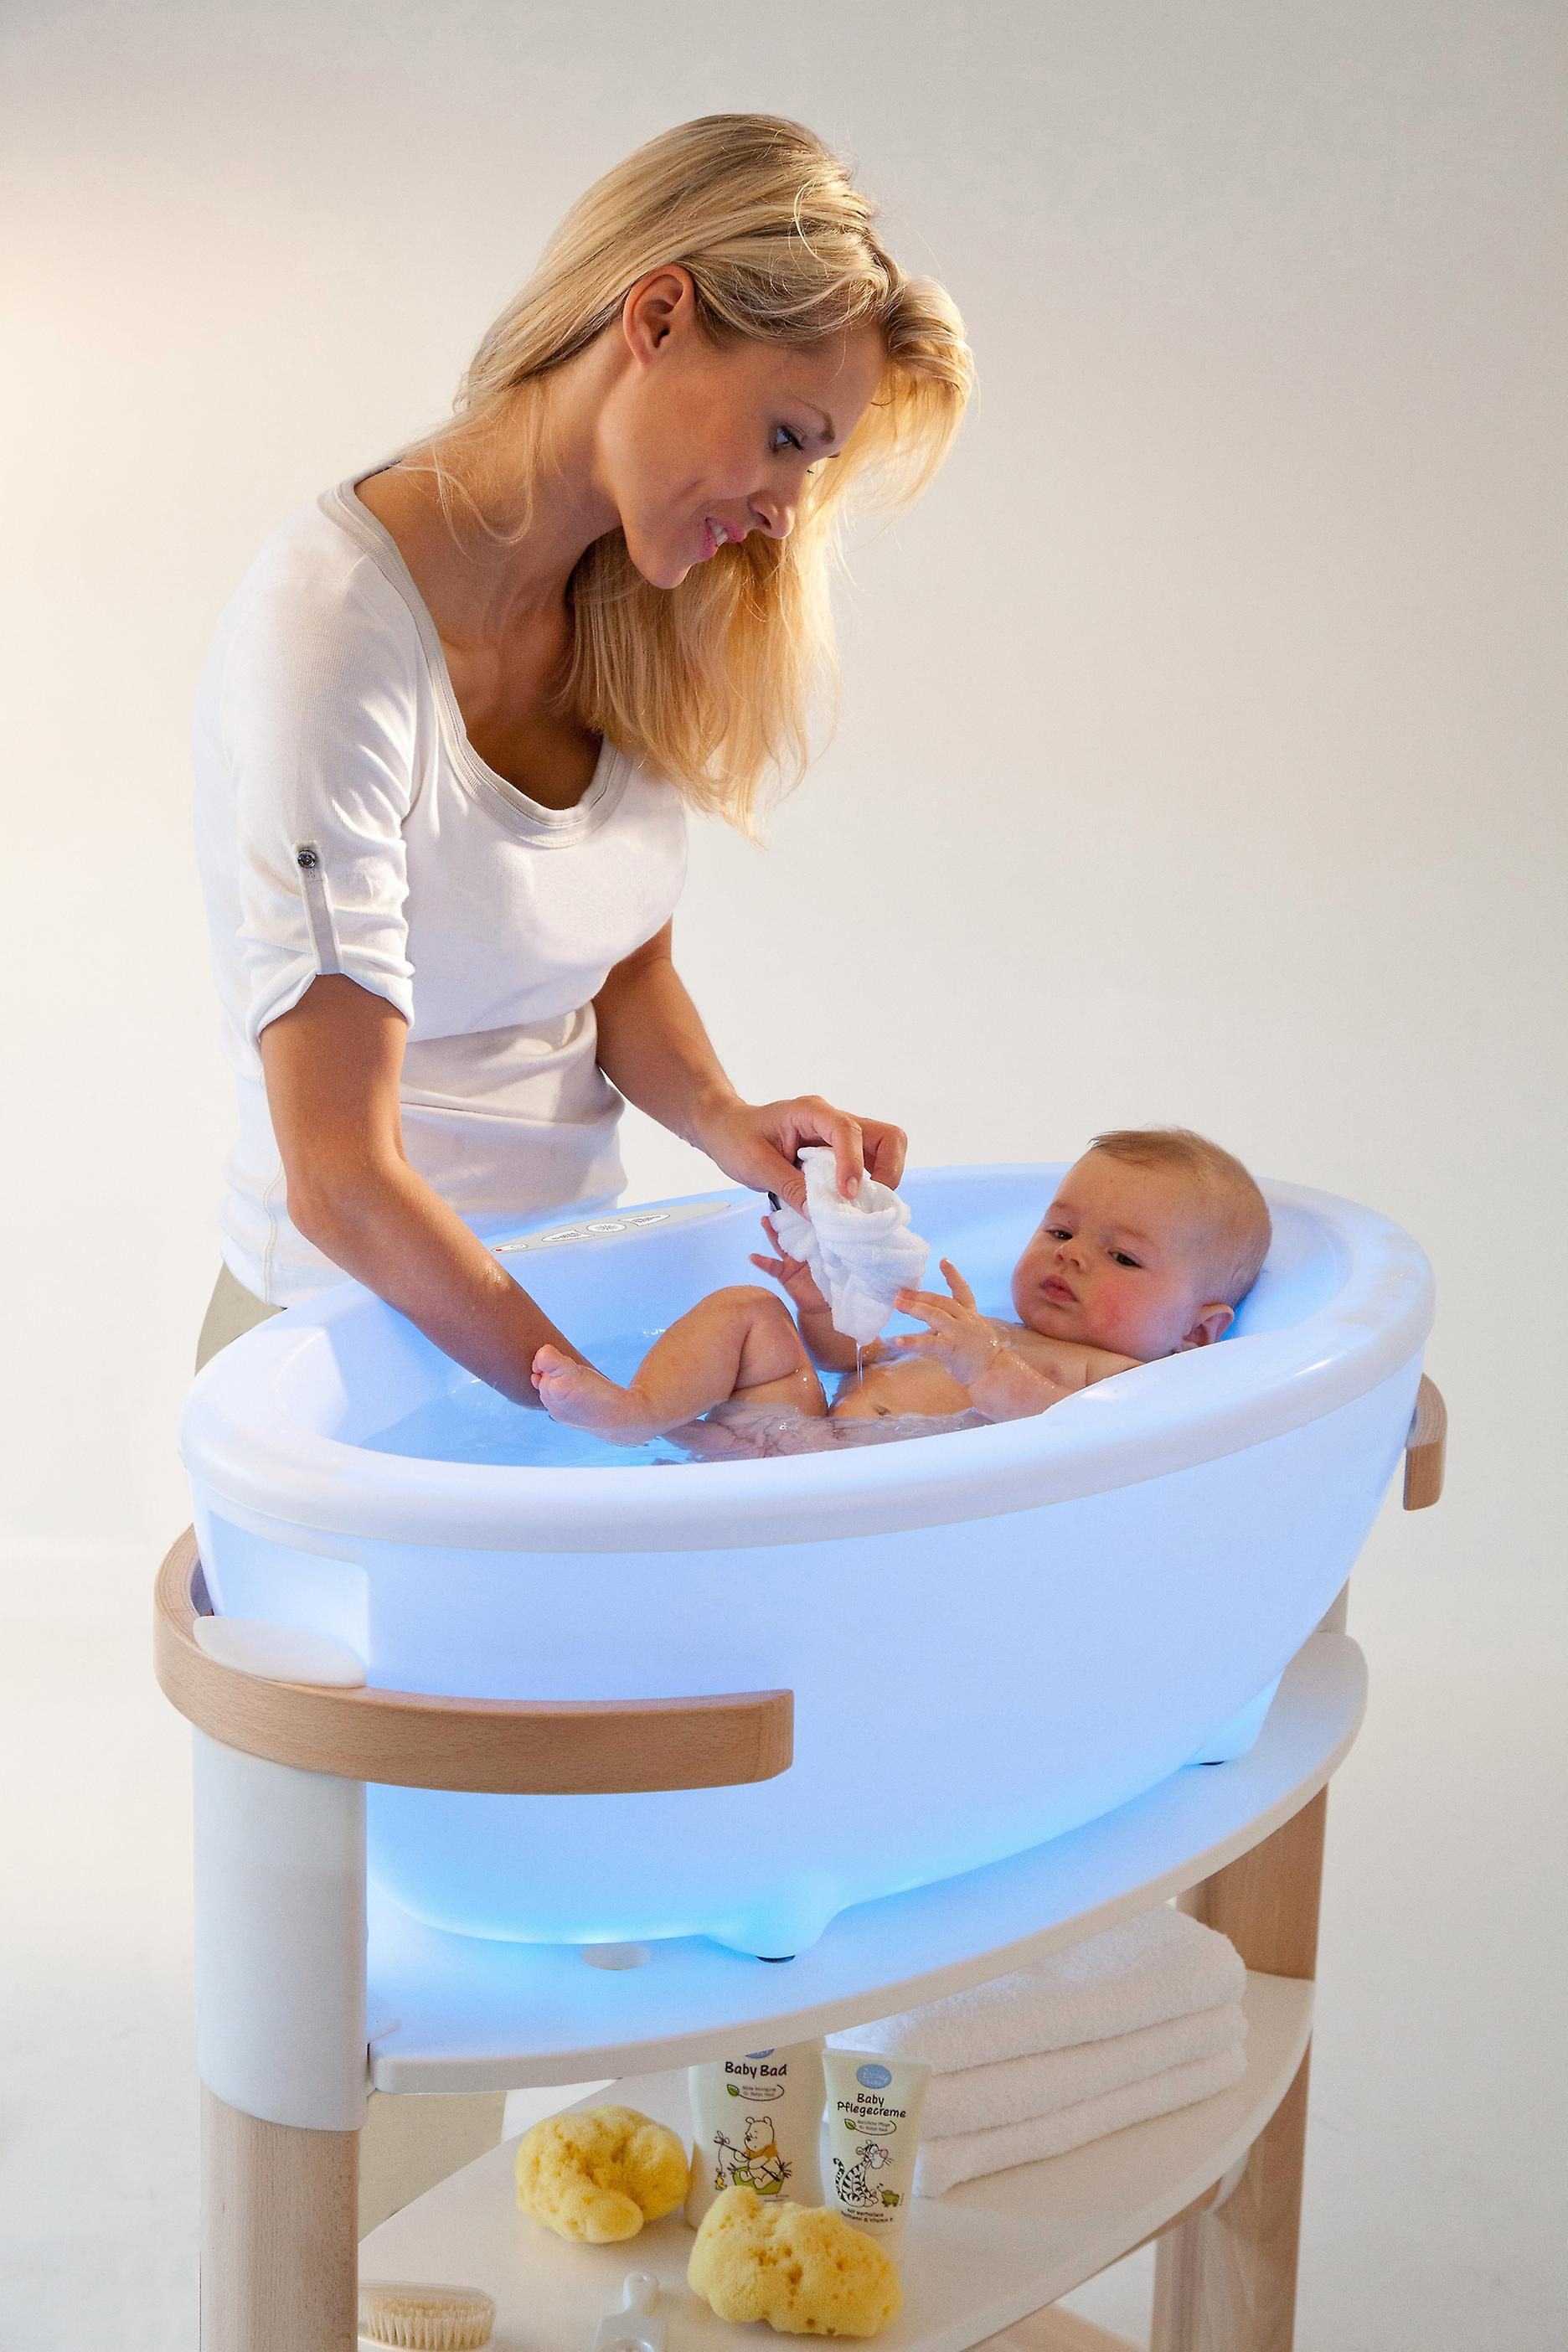 Baby Spa Bad staan